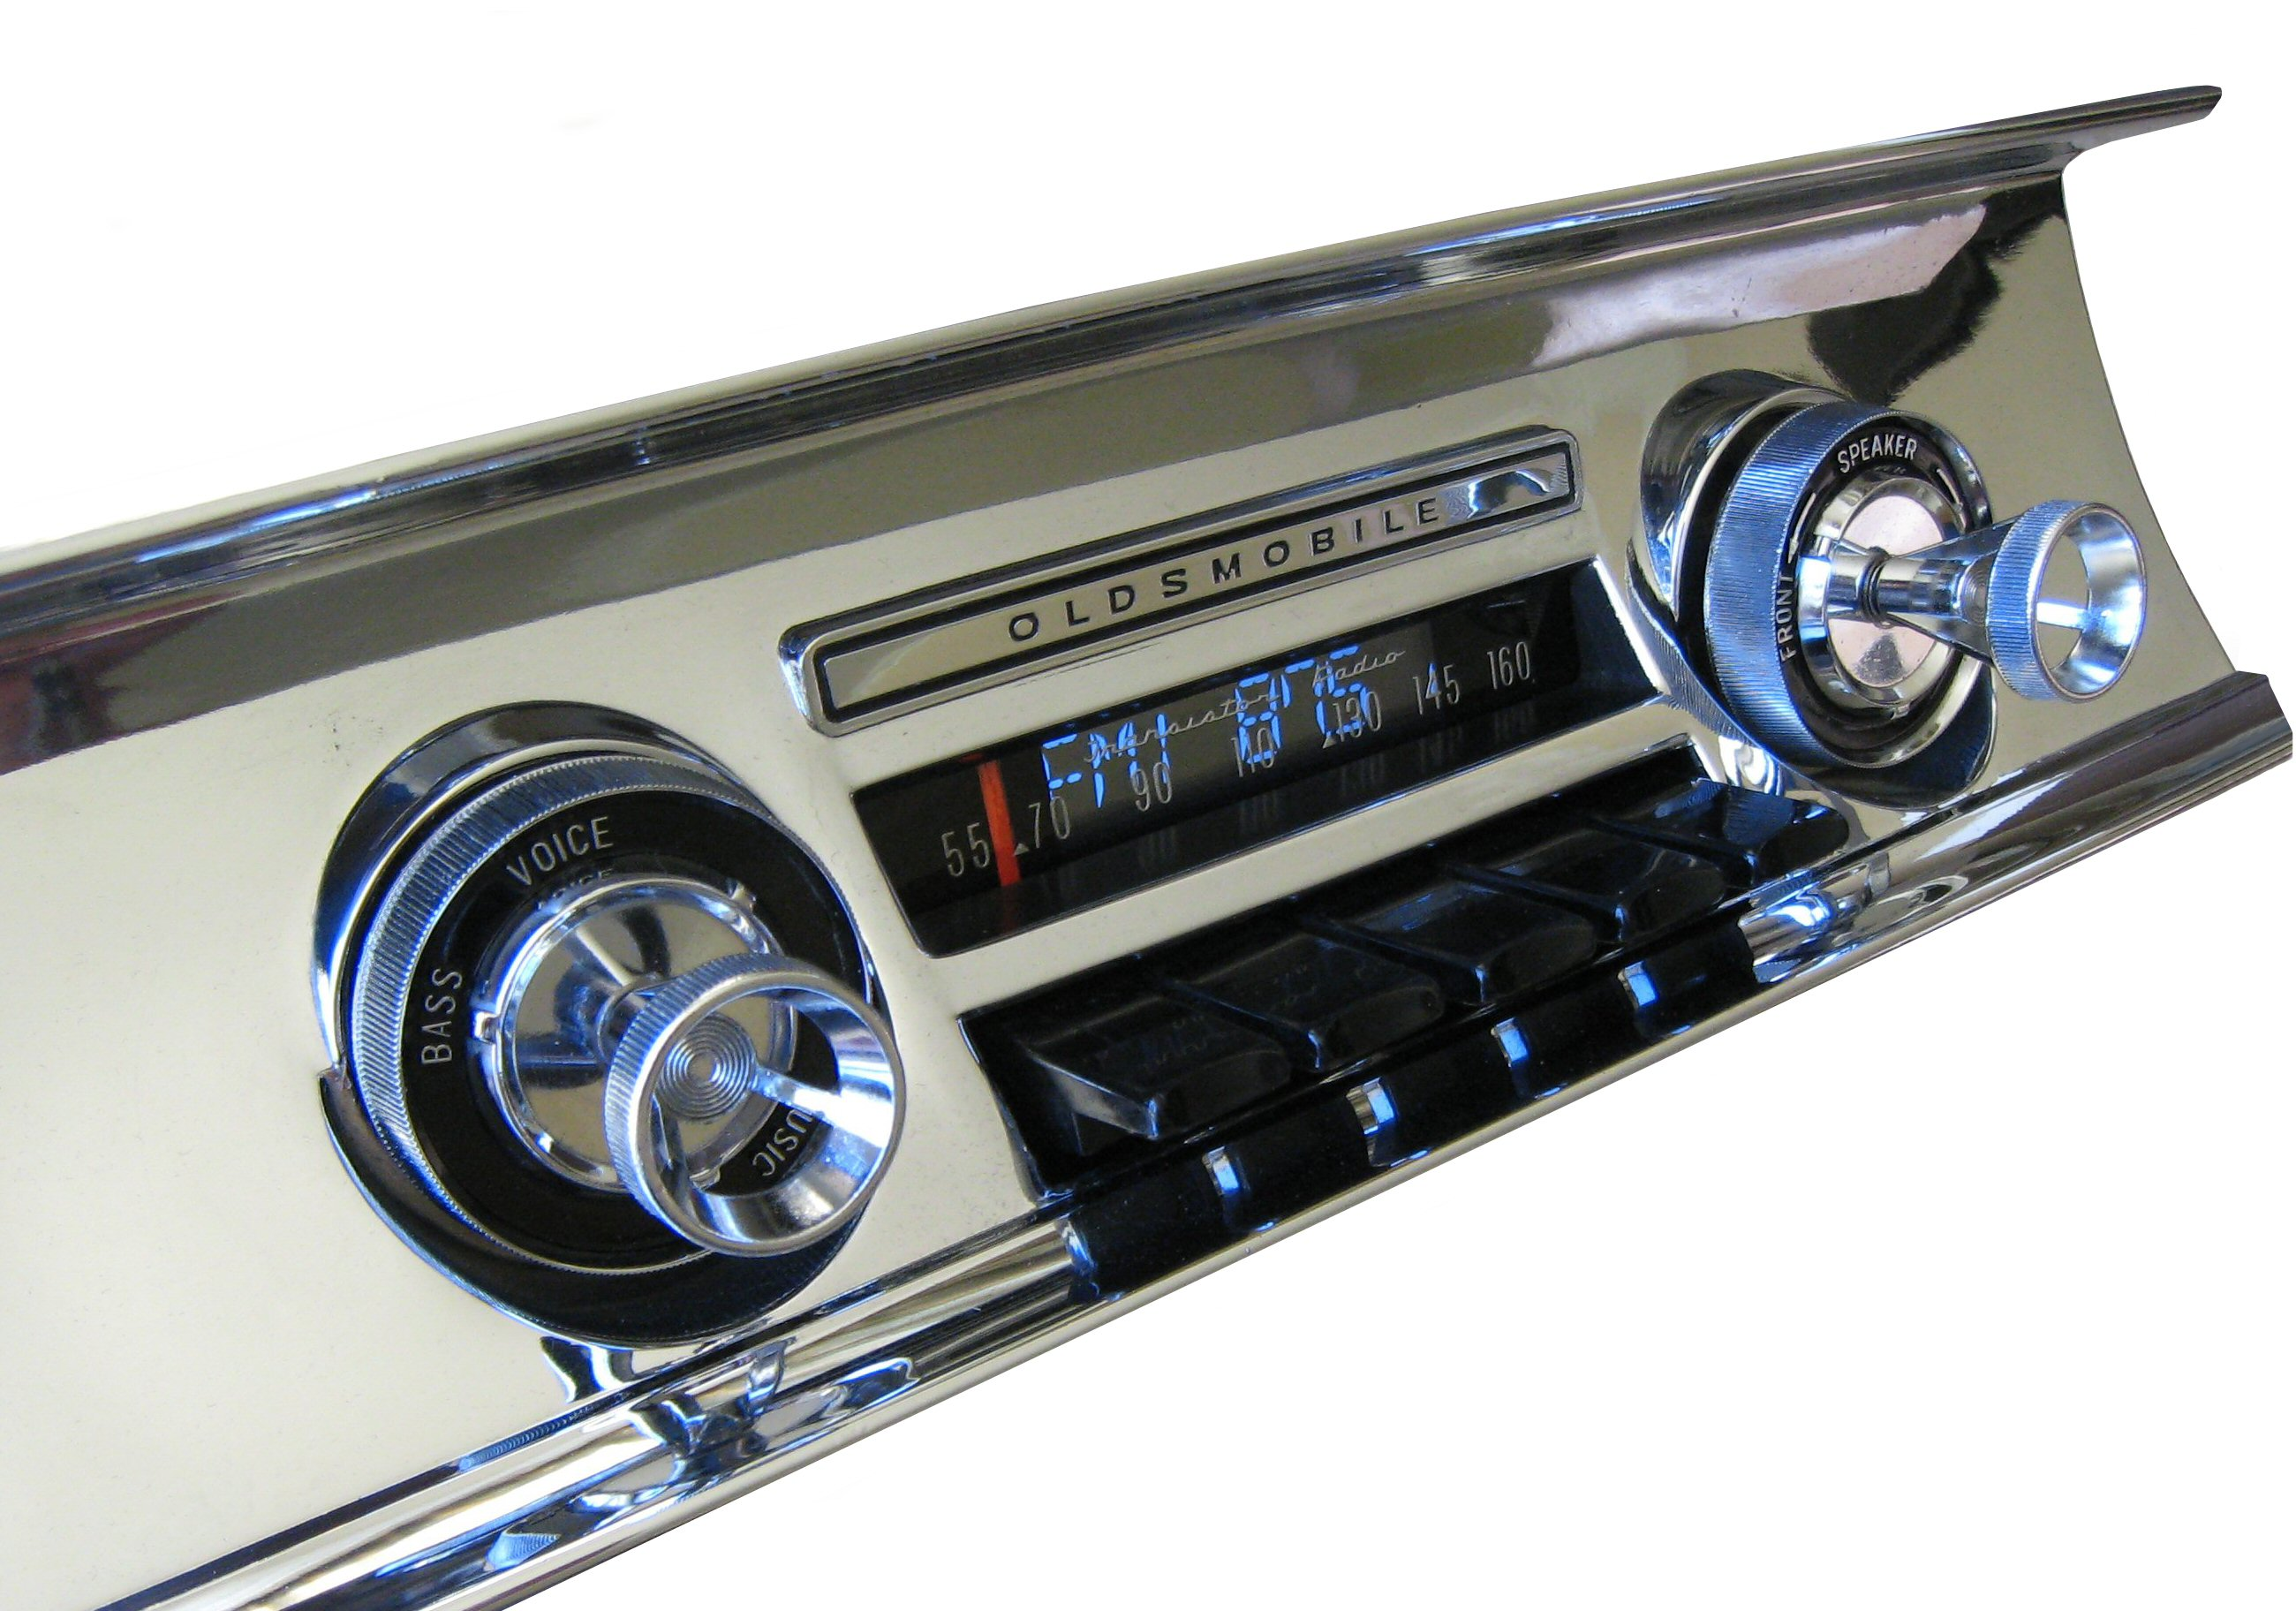 62 Oldsmobile after Conversion Radio on 2a.jpg